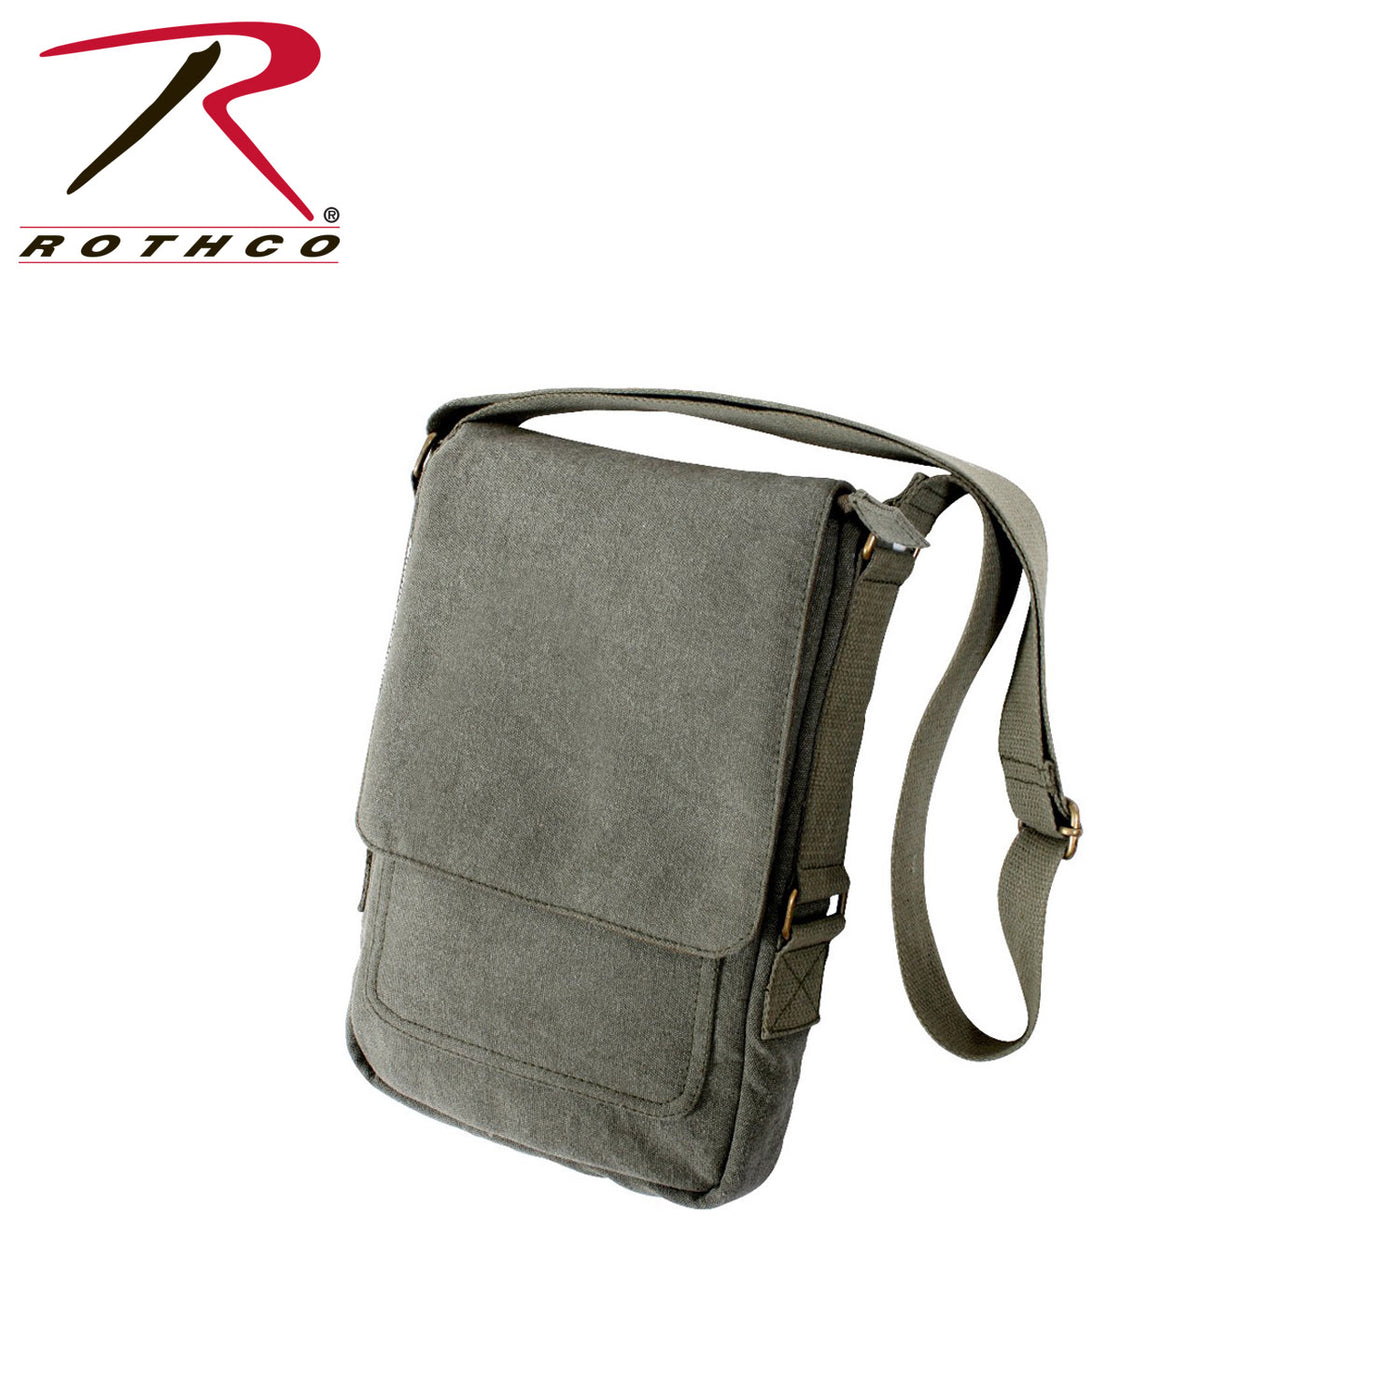 13aa3022ad1b Rothco Vintage Canvas Military Tech Bag Vintage Olive Drab – Trailside  Outfitter